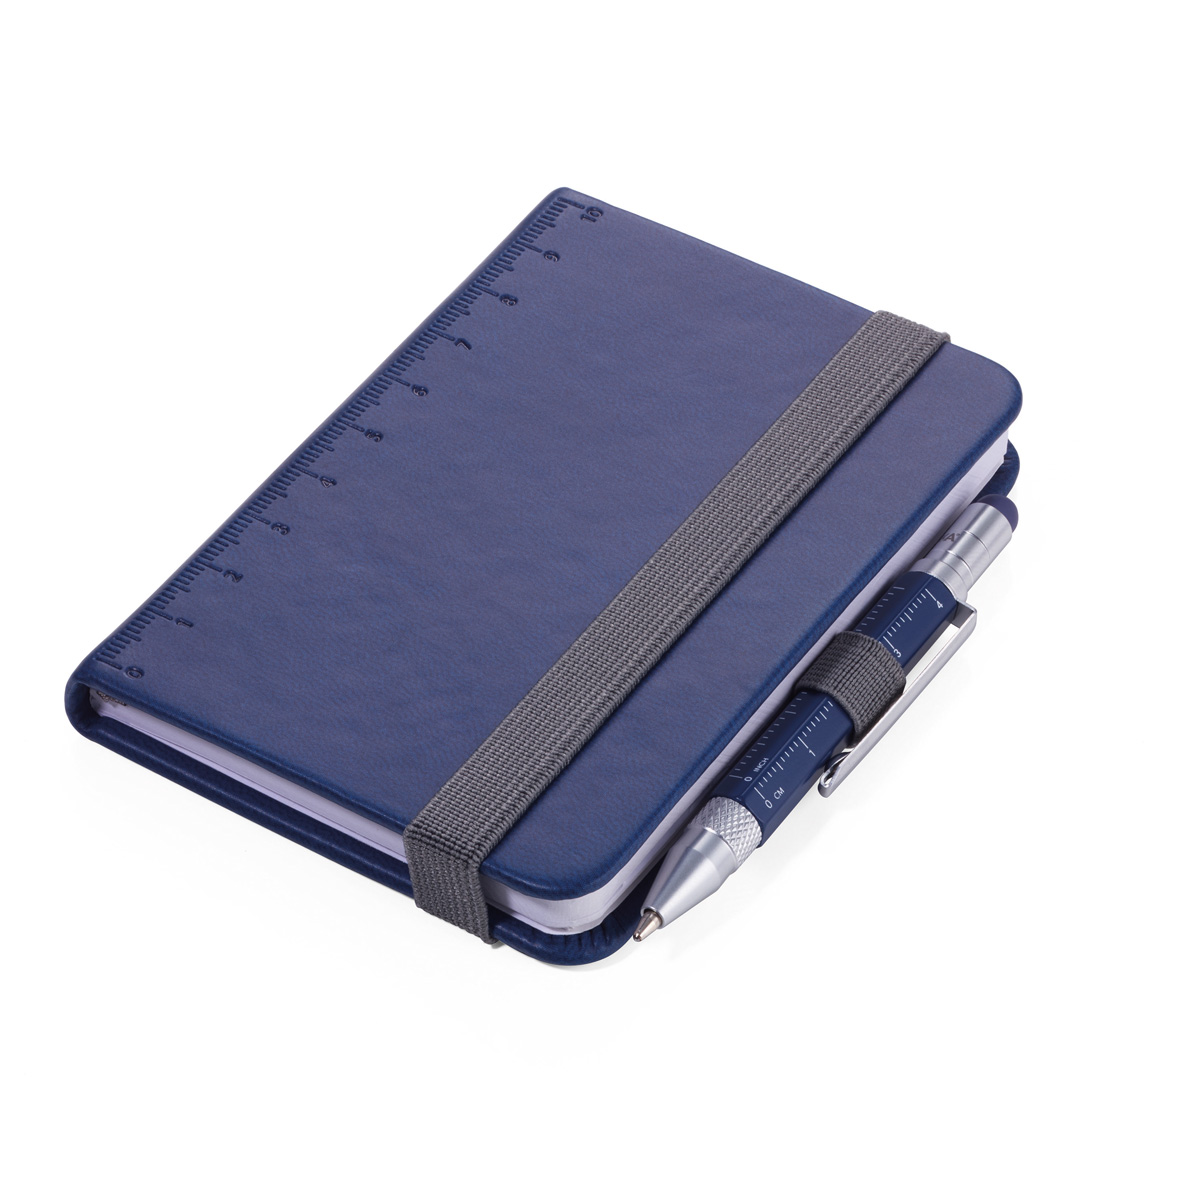 Troika Lilipad and Liliput Mini Notebook and Pen Dark Blue